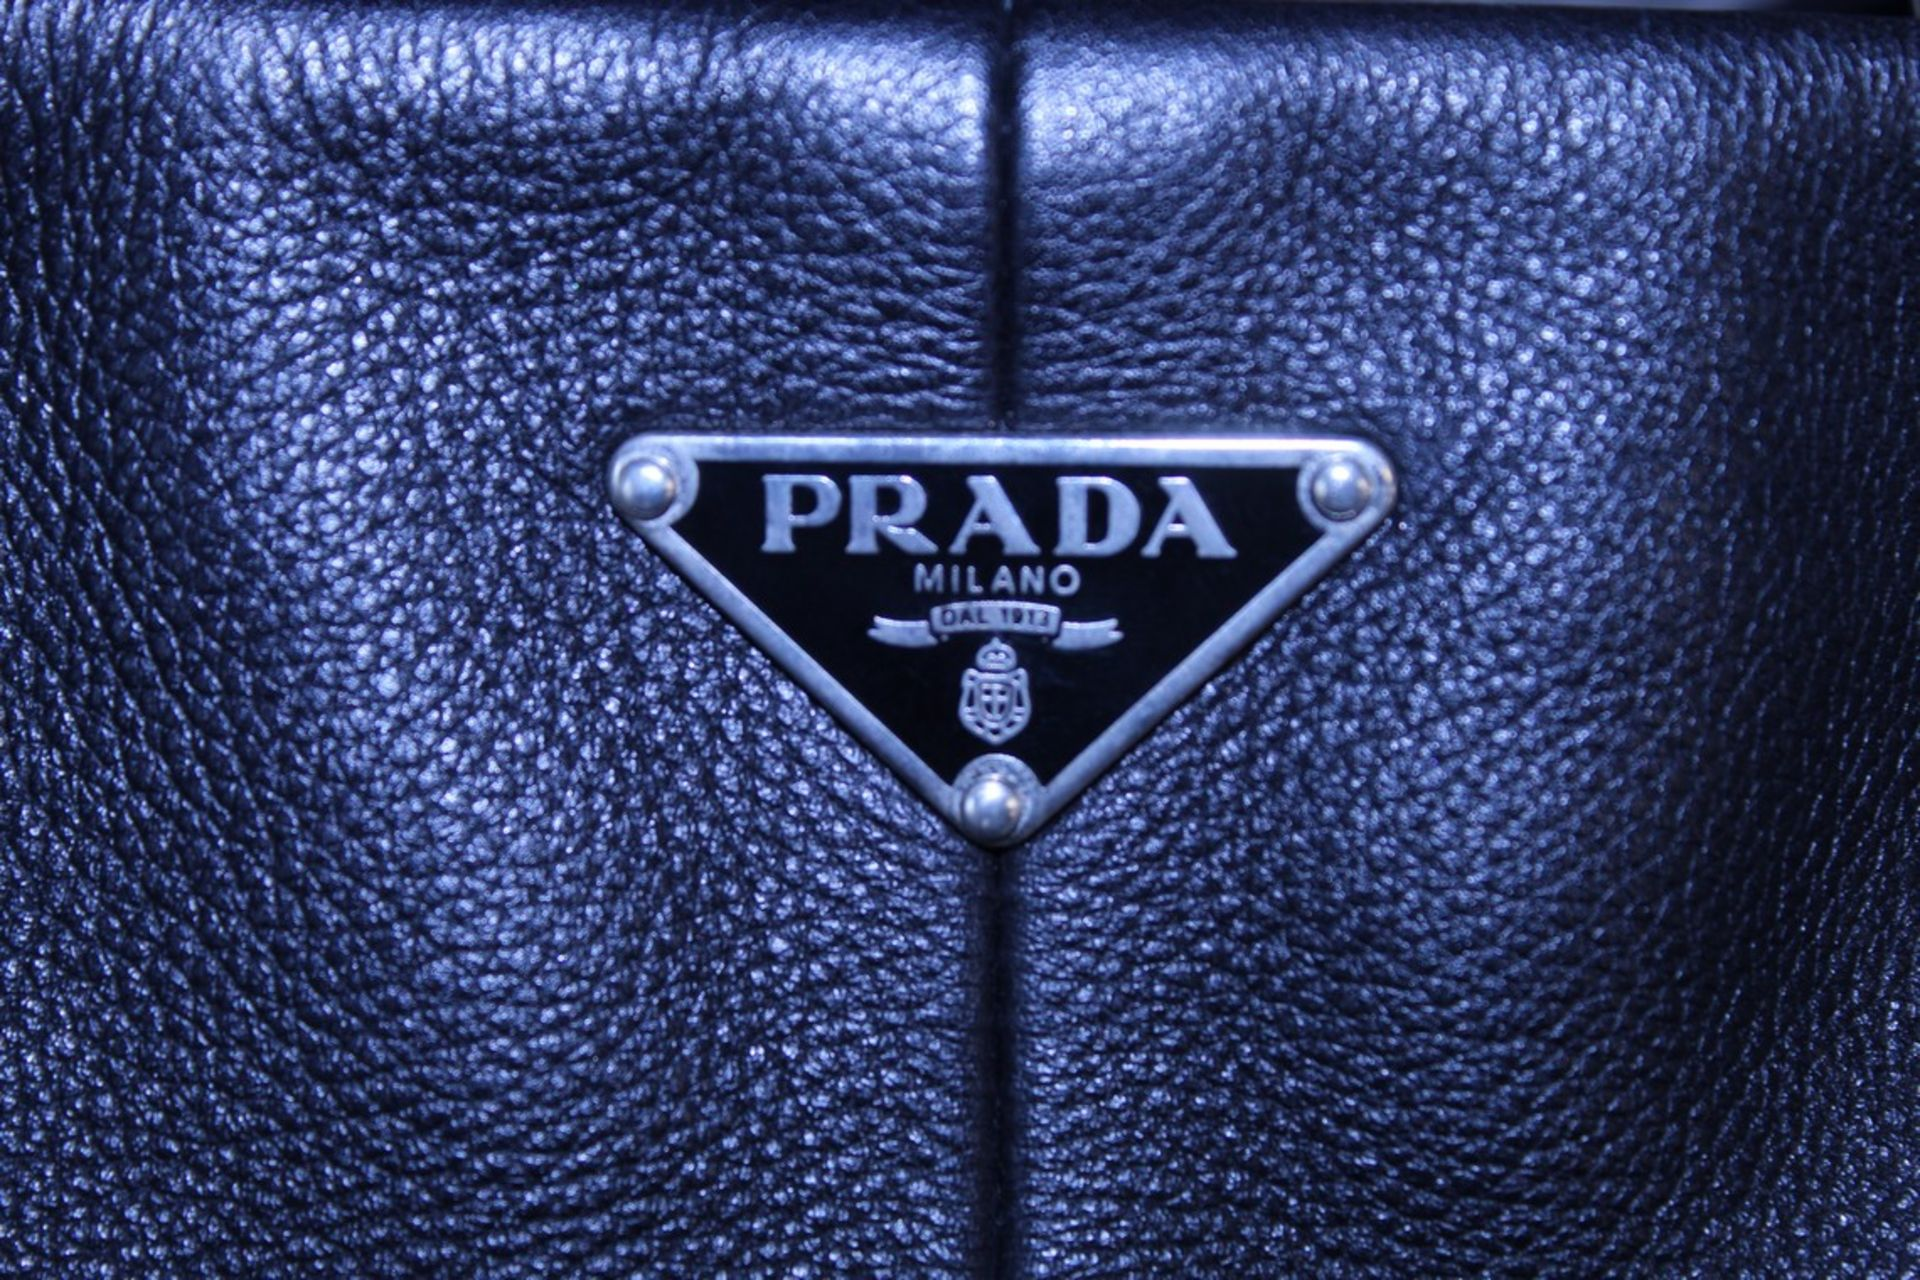 RRP £1200 Prada Side Pocket Tote Shoulder Bag In Black Small Grained Leather With Black Leather - Image 2 of 3